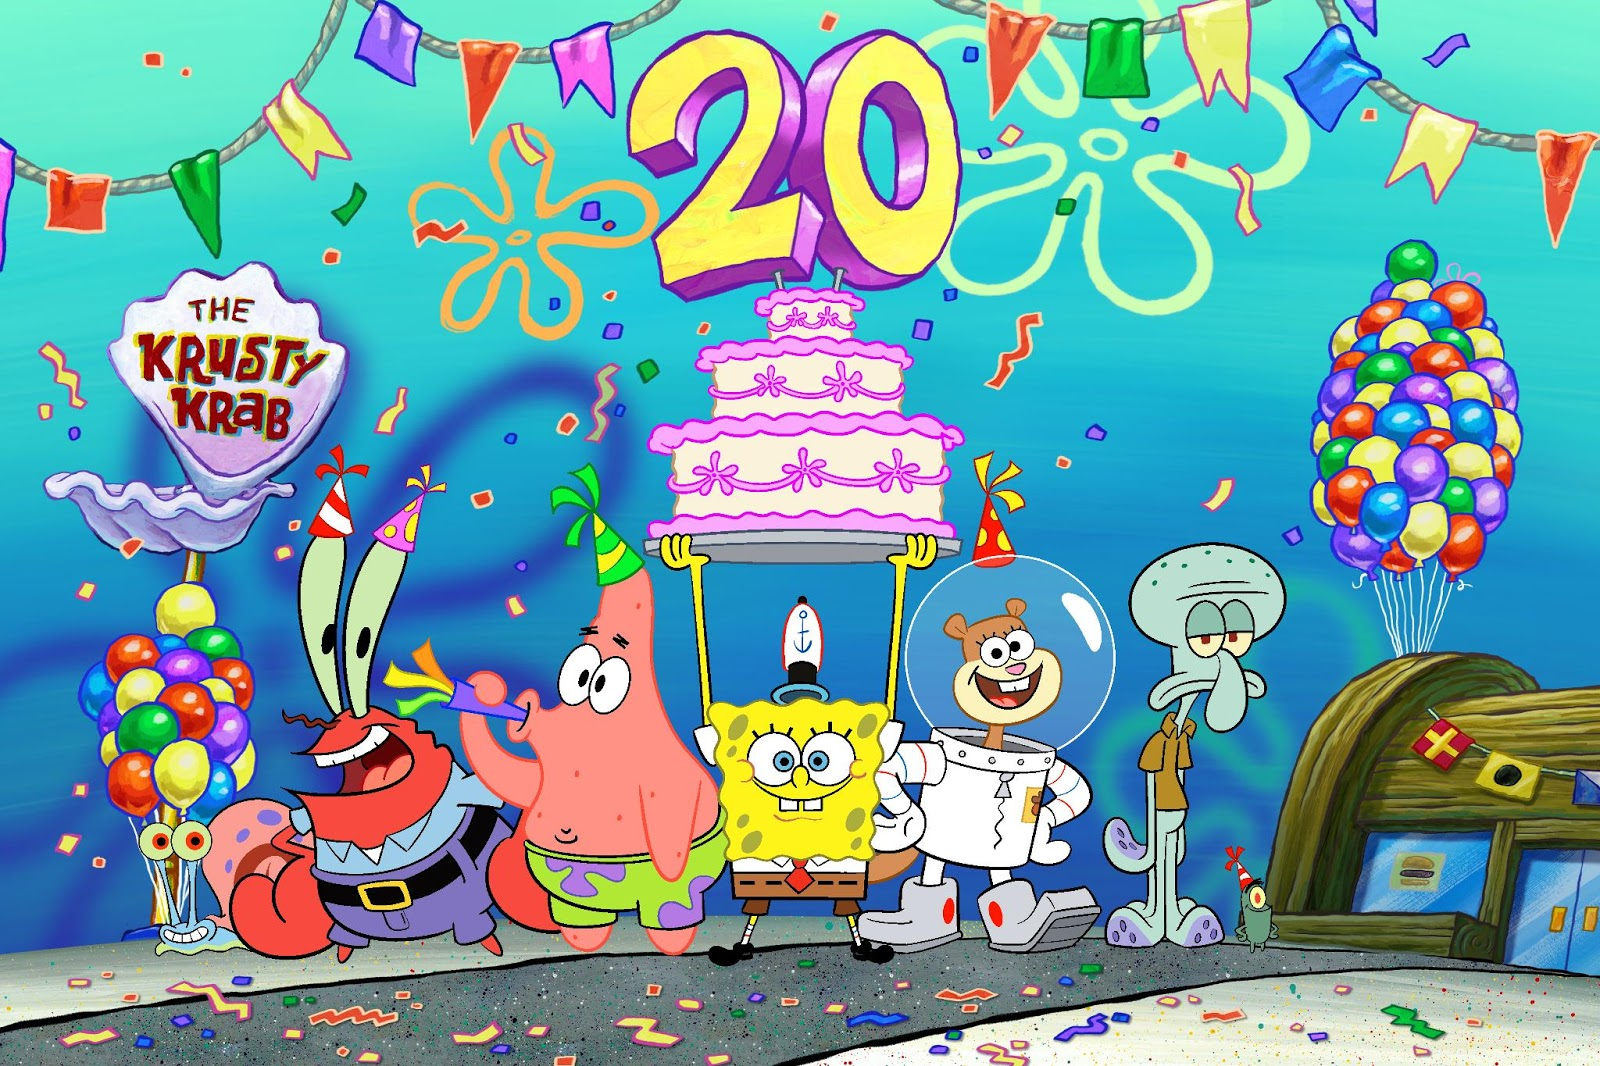 11 2019 nickelodeon is commemorating 20 years of spongebob squarepants with the best year ever a tribute to one of the most iconic tv series and